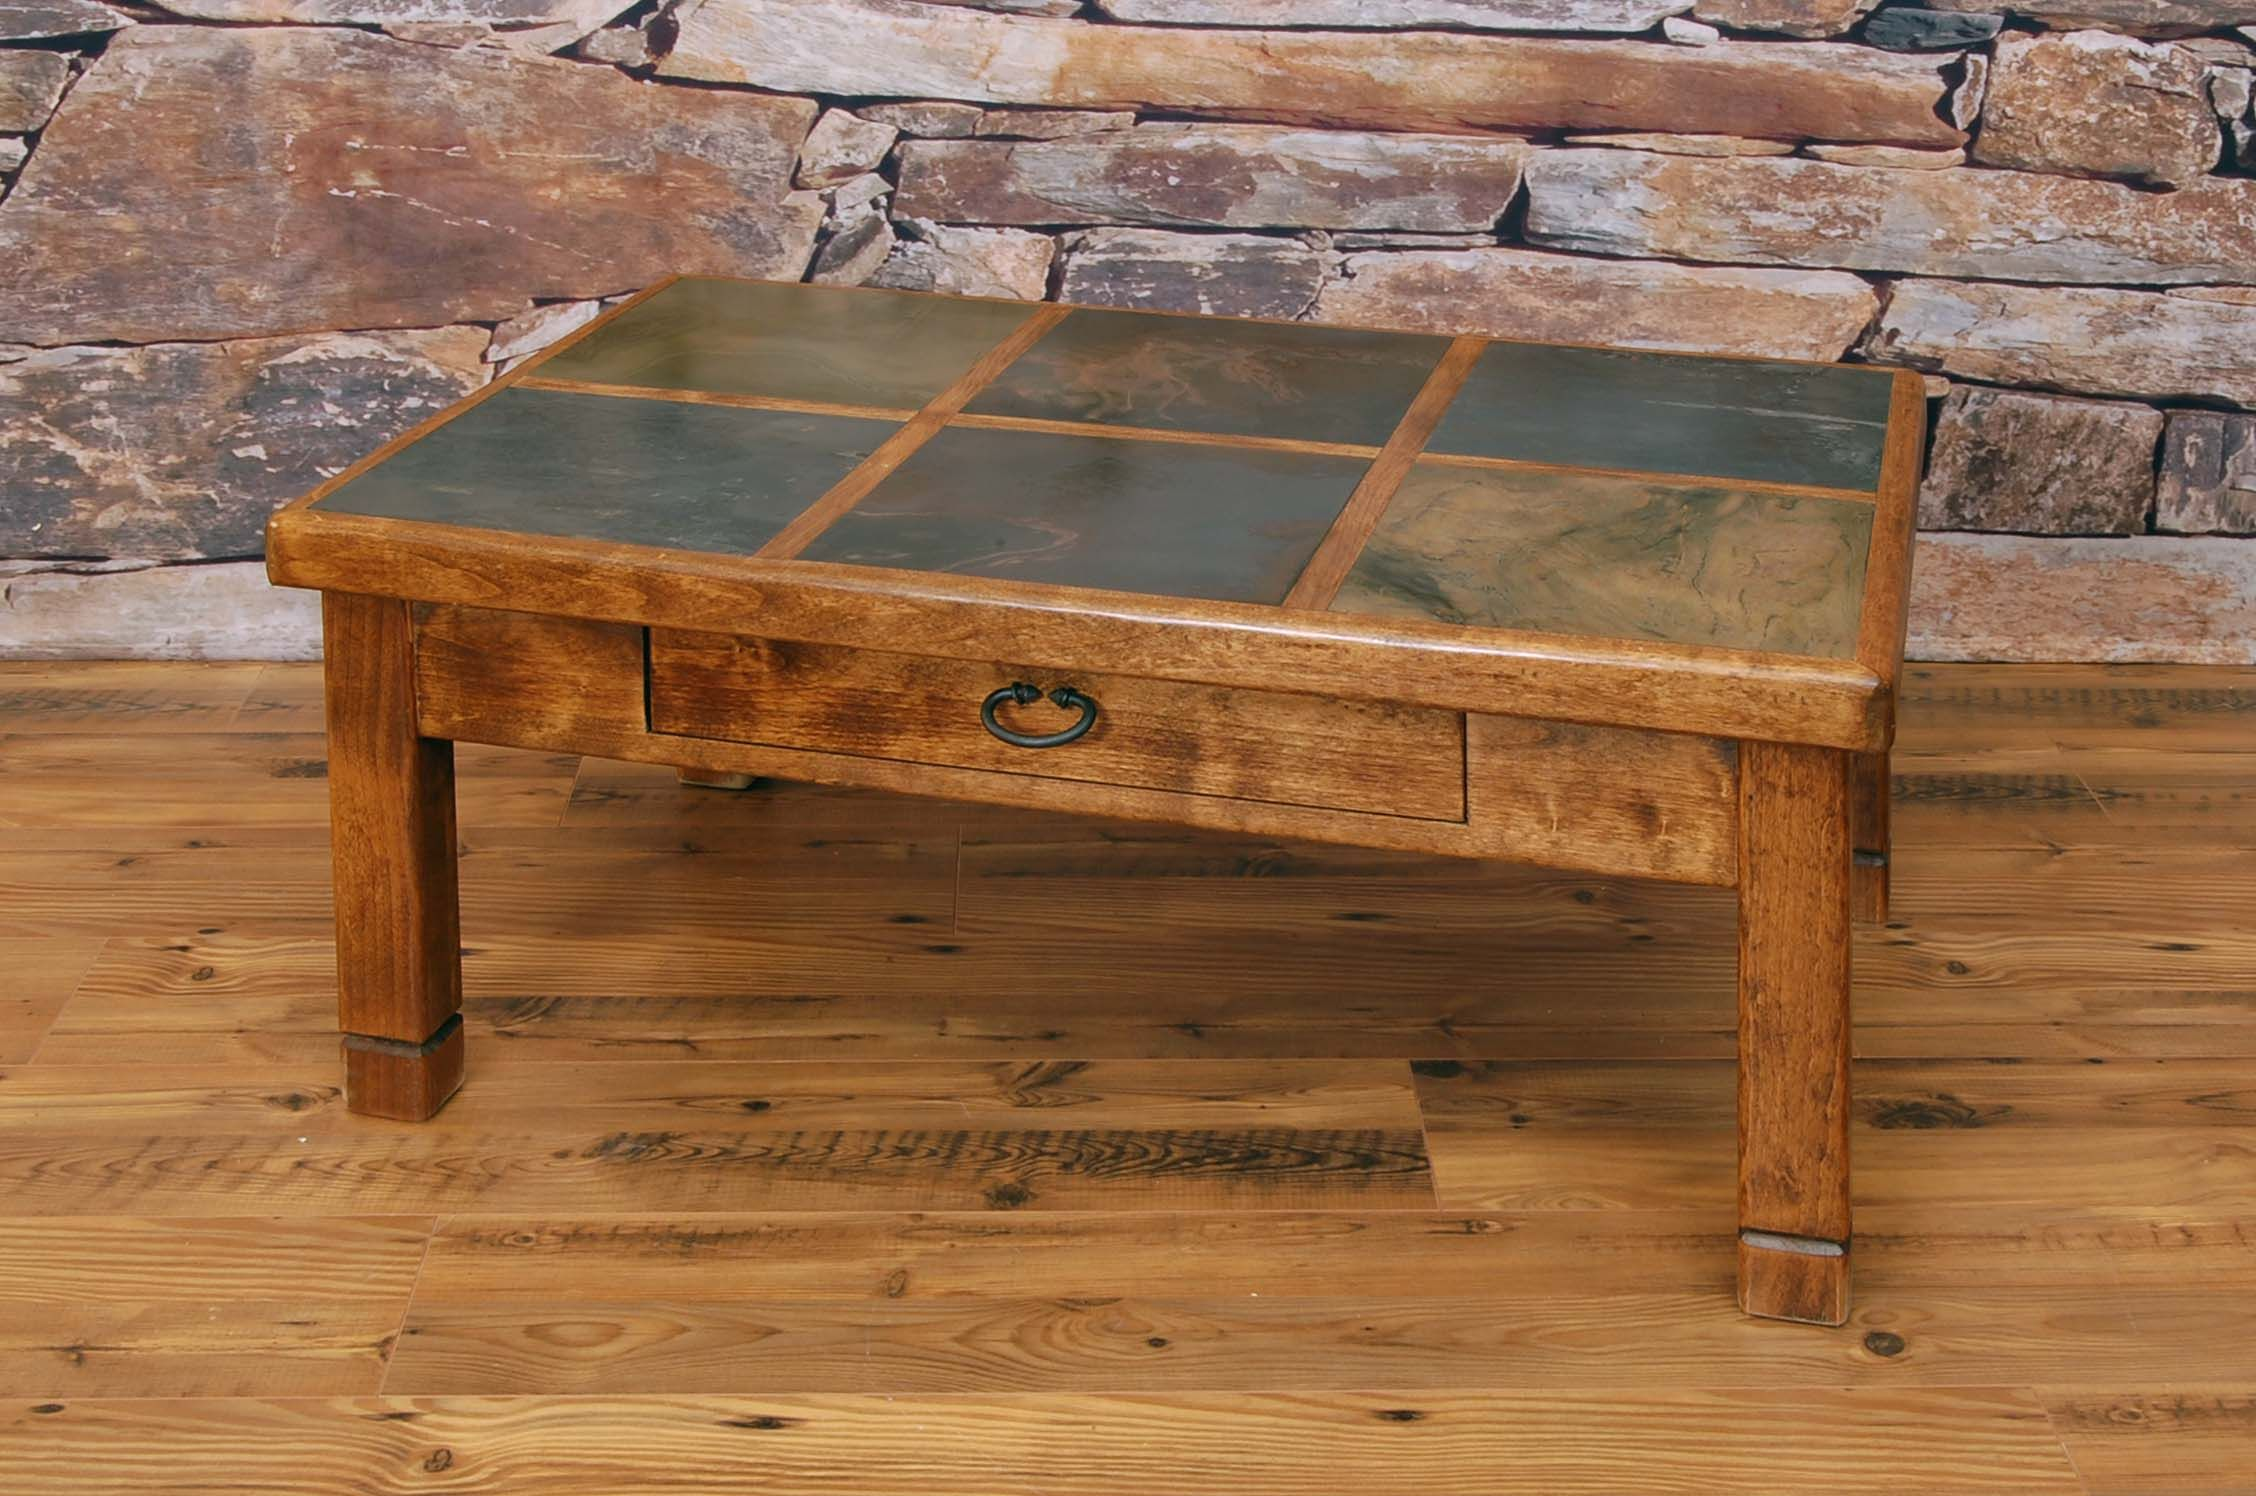 Wood And Slate Coffee Table Tables With Measurements 1555 X 830 Set A Little Is Ideal For